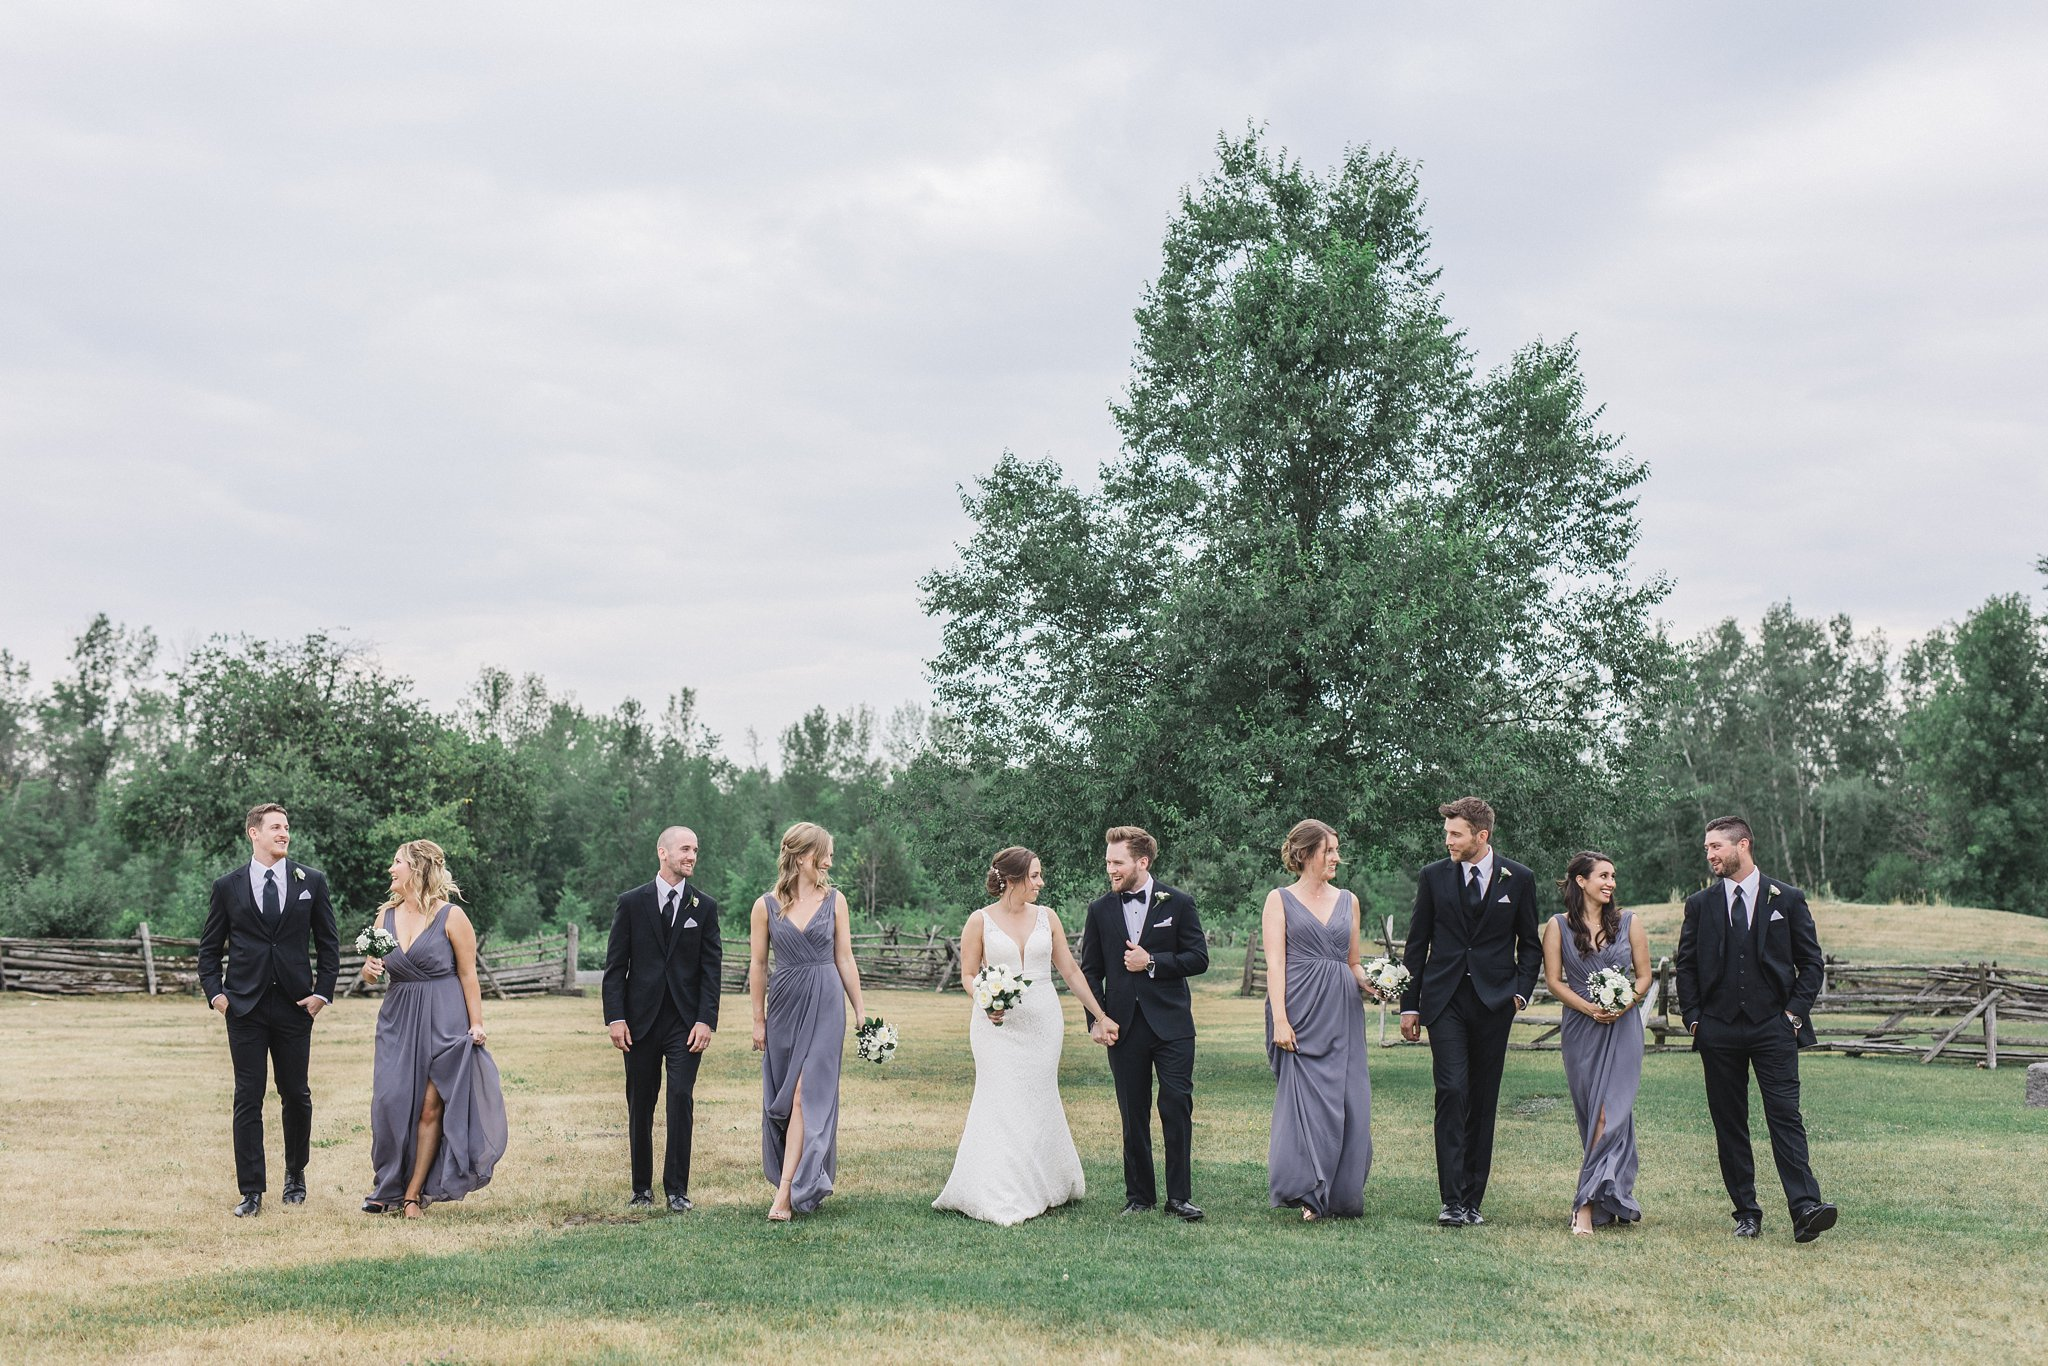 Bridal party walking in field married at Stonefields, Amy Pinder Photography